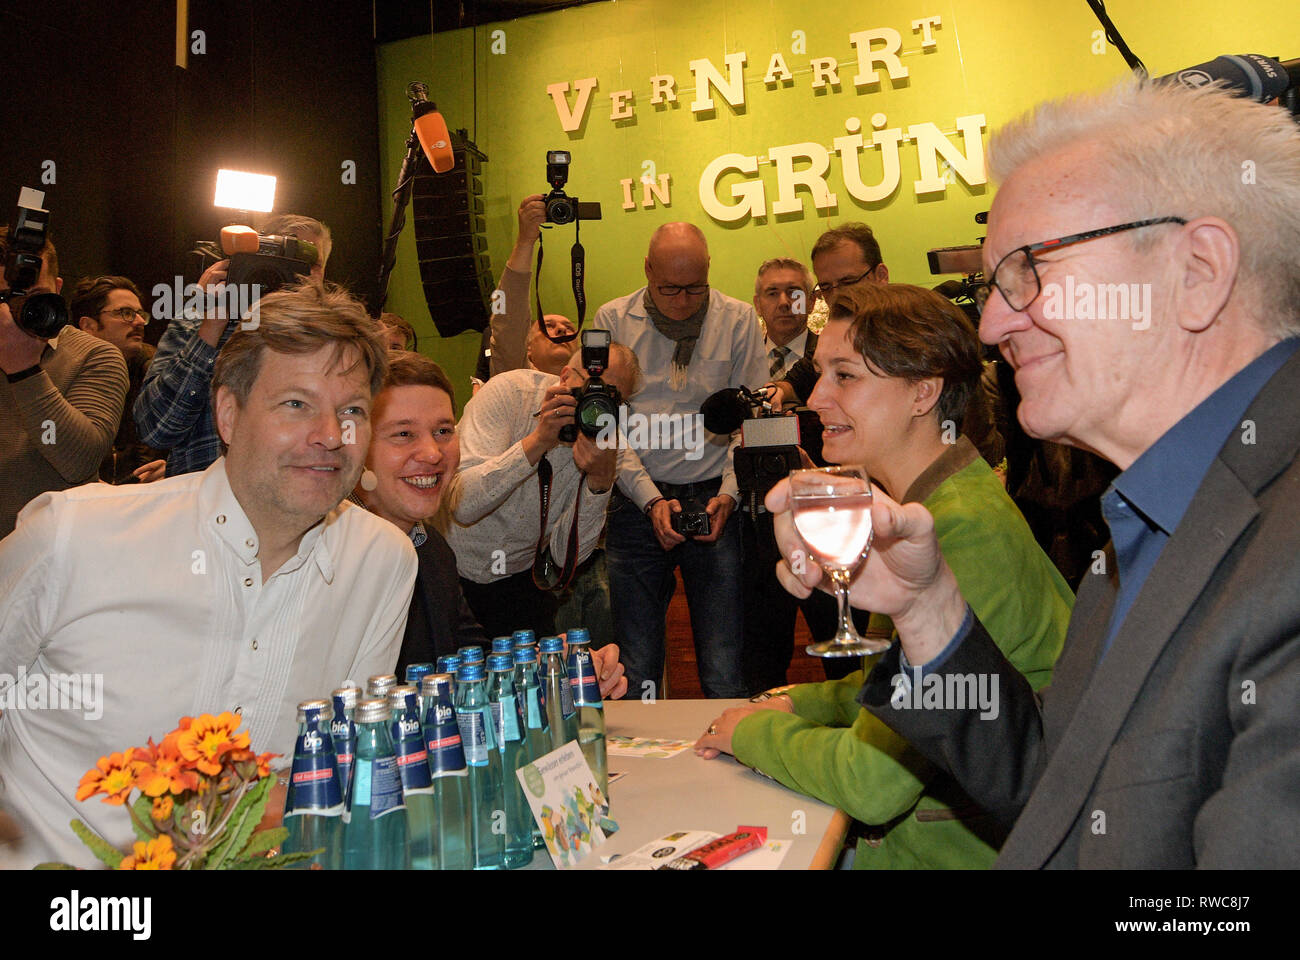 Biberach, Germany. 06th Mar, 2019. Political Ash Wednesday of the Greens in Baden-Württemberg in the Stadthalle. The politicians (l-r) Robert Habeck, federal chairman alliance 90/ the Greens, the two regional chairmen olive Hildenbrand and Sandra Detzer and Winfried Kretschmann, Prime Minister Baden-Wuerttemberg, Greens are surrounded by journalists and drink water. Credit: Stefan Puchner/dpa/Alamy Live News - Stock Image